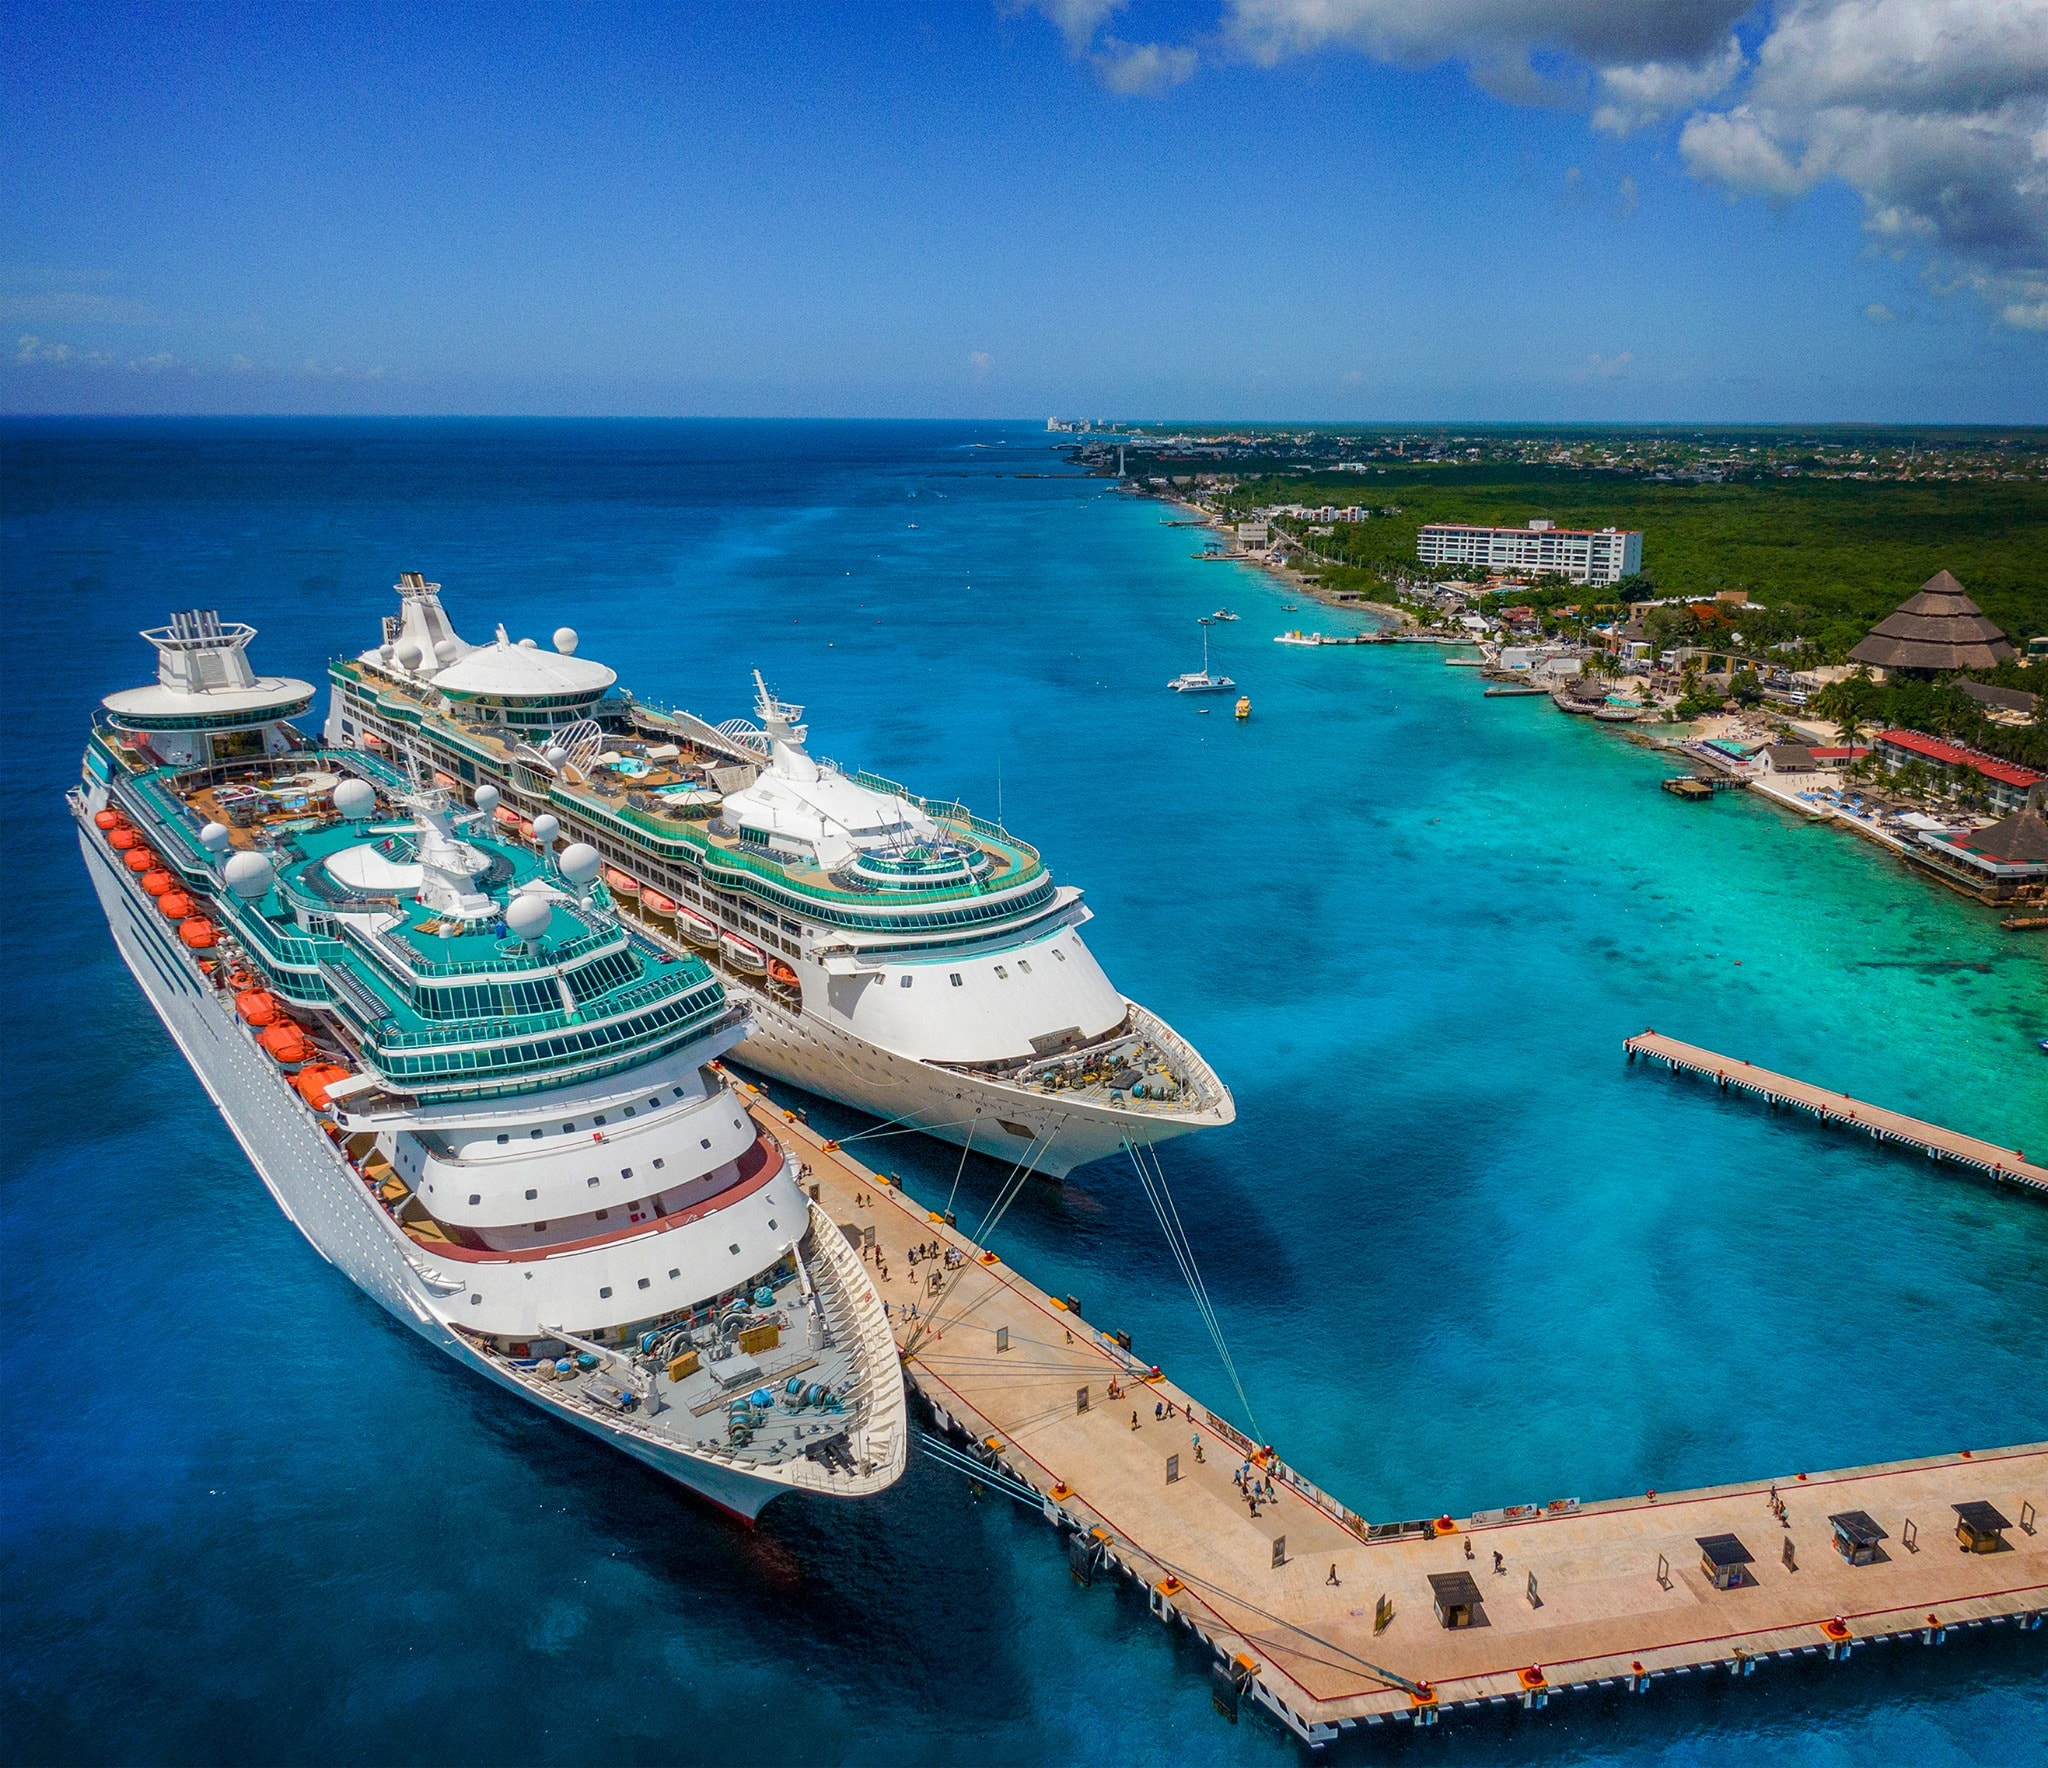 Two ships in Cozumel